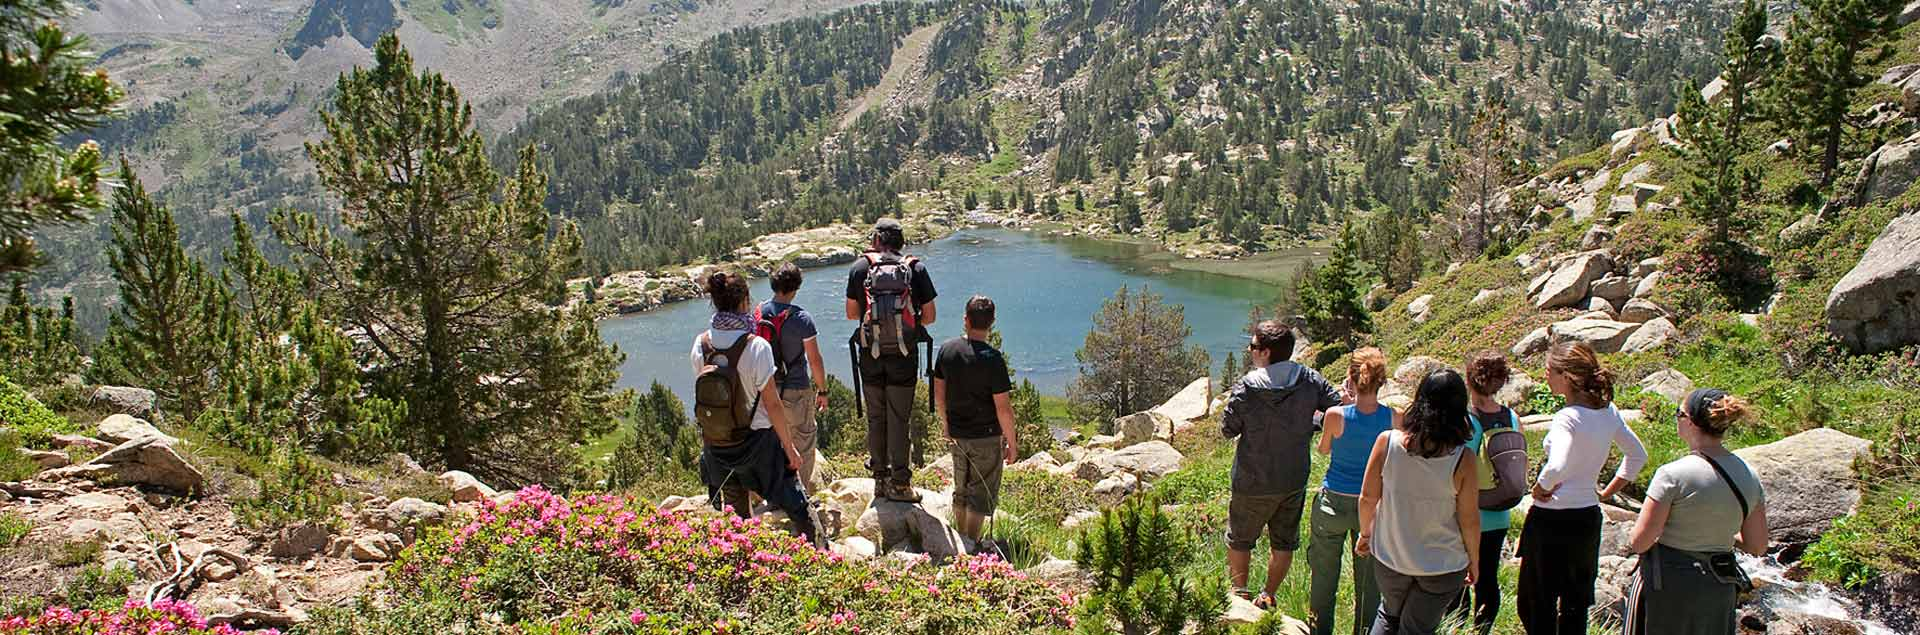 Mountain lakes in summer in Andorra